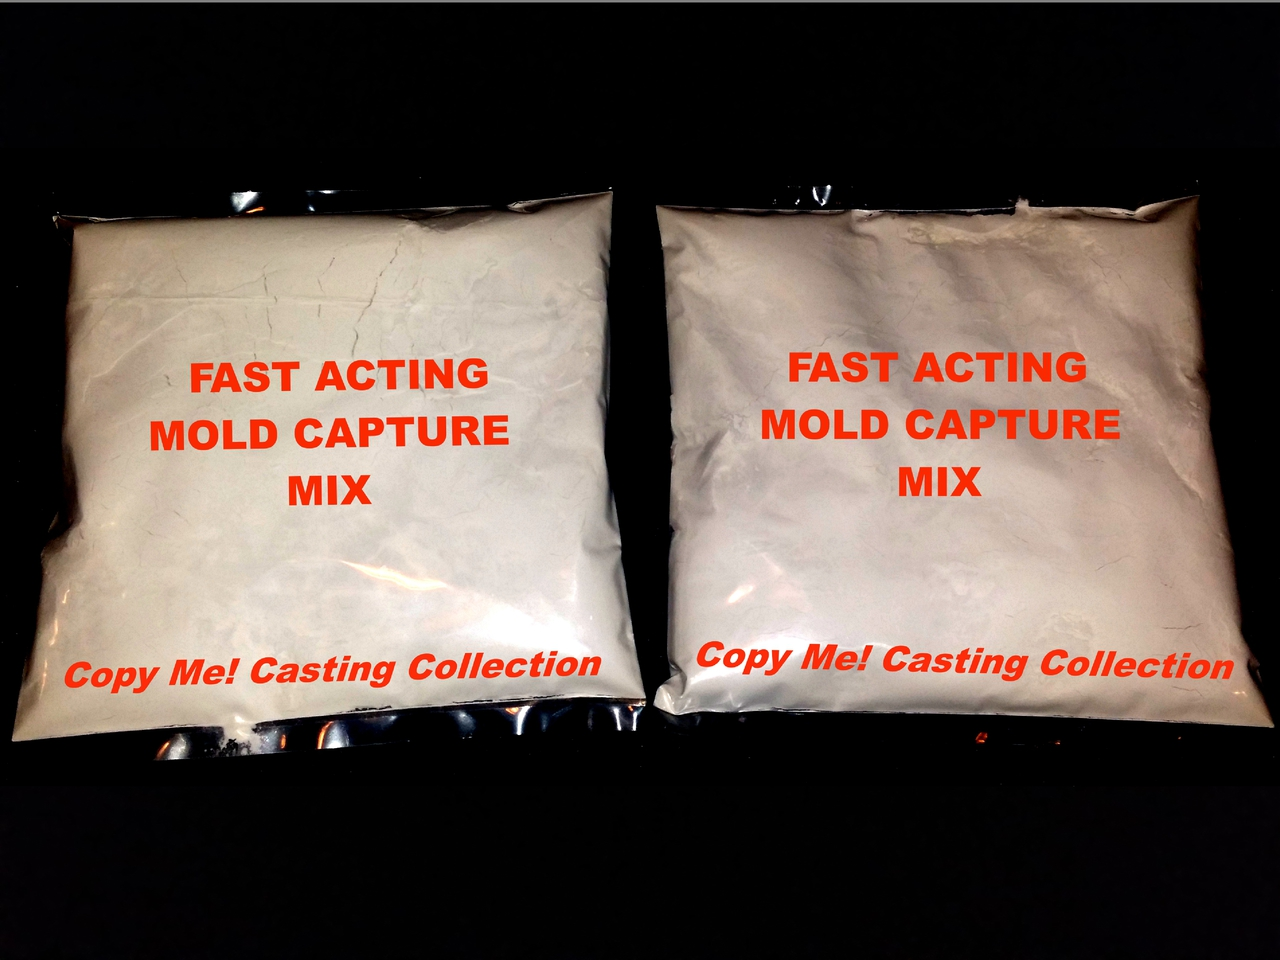 Fast Acting Mold Capture Mix - 2 Bag Refill